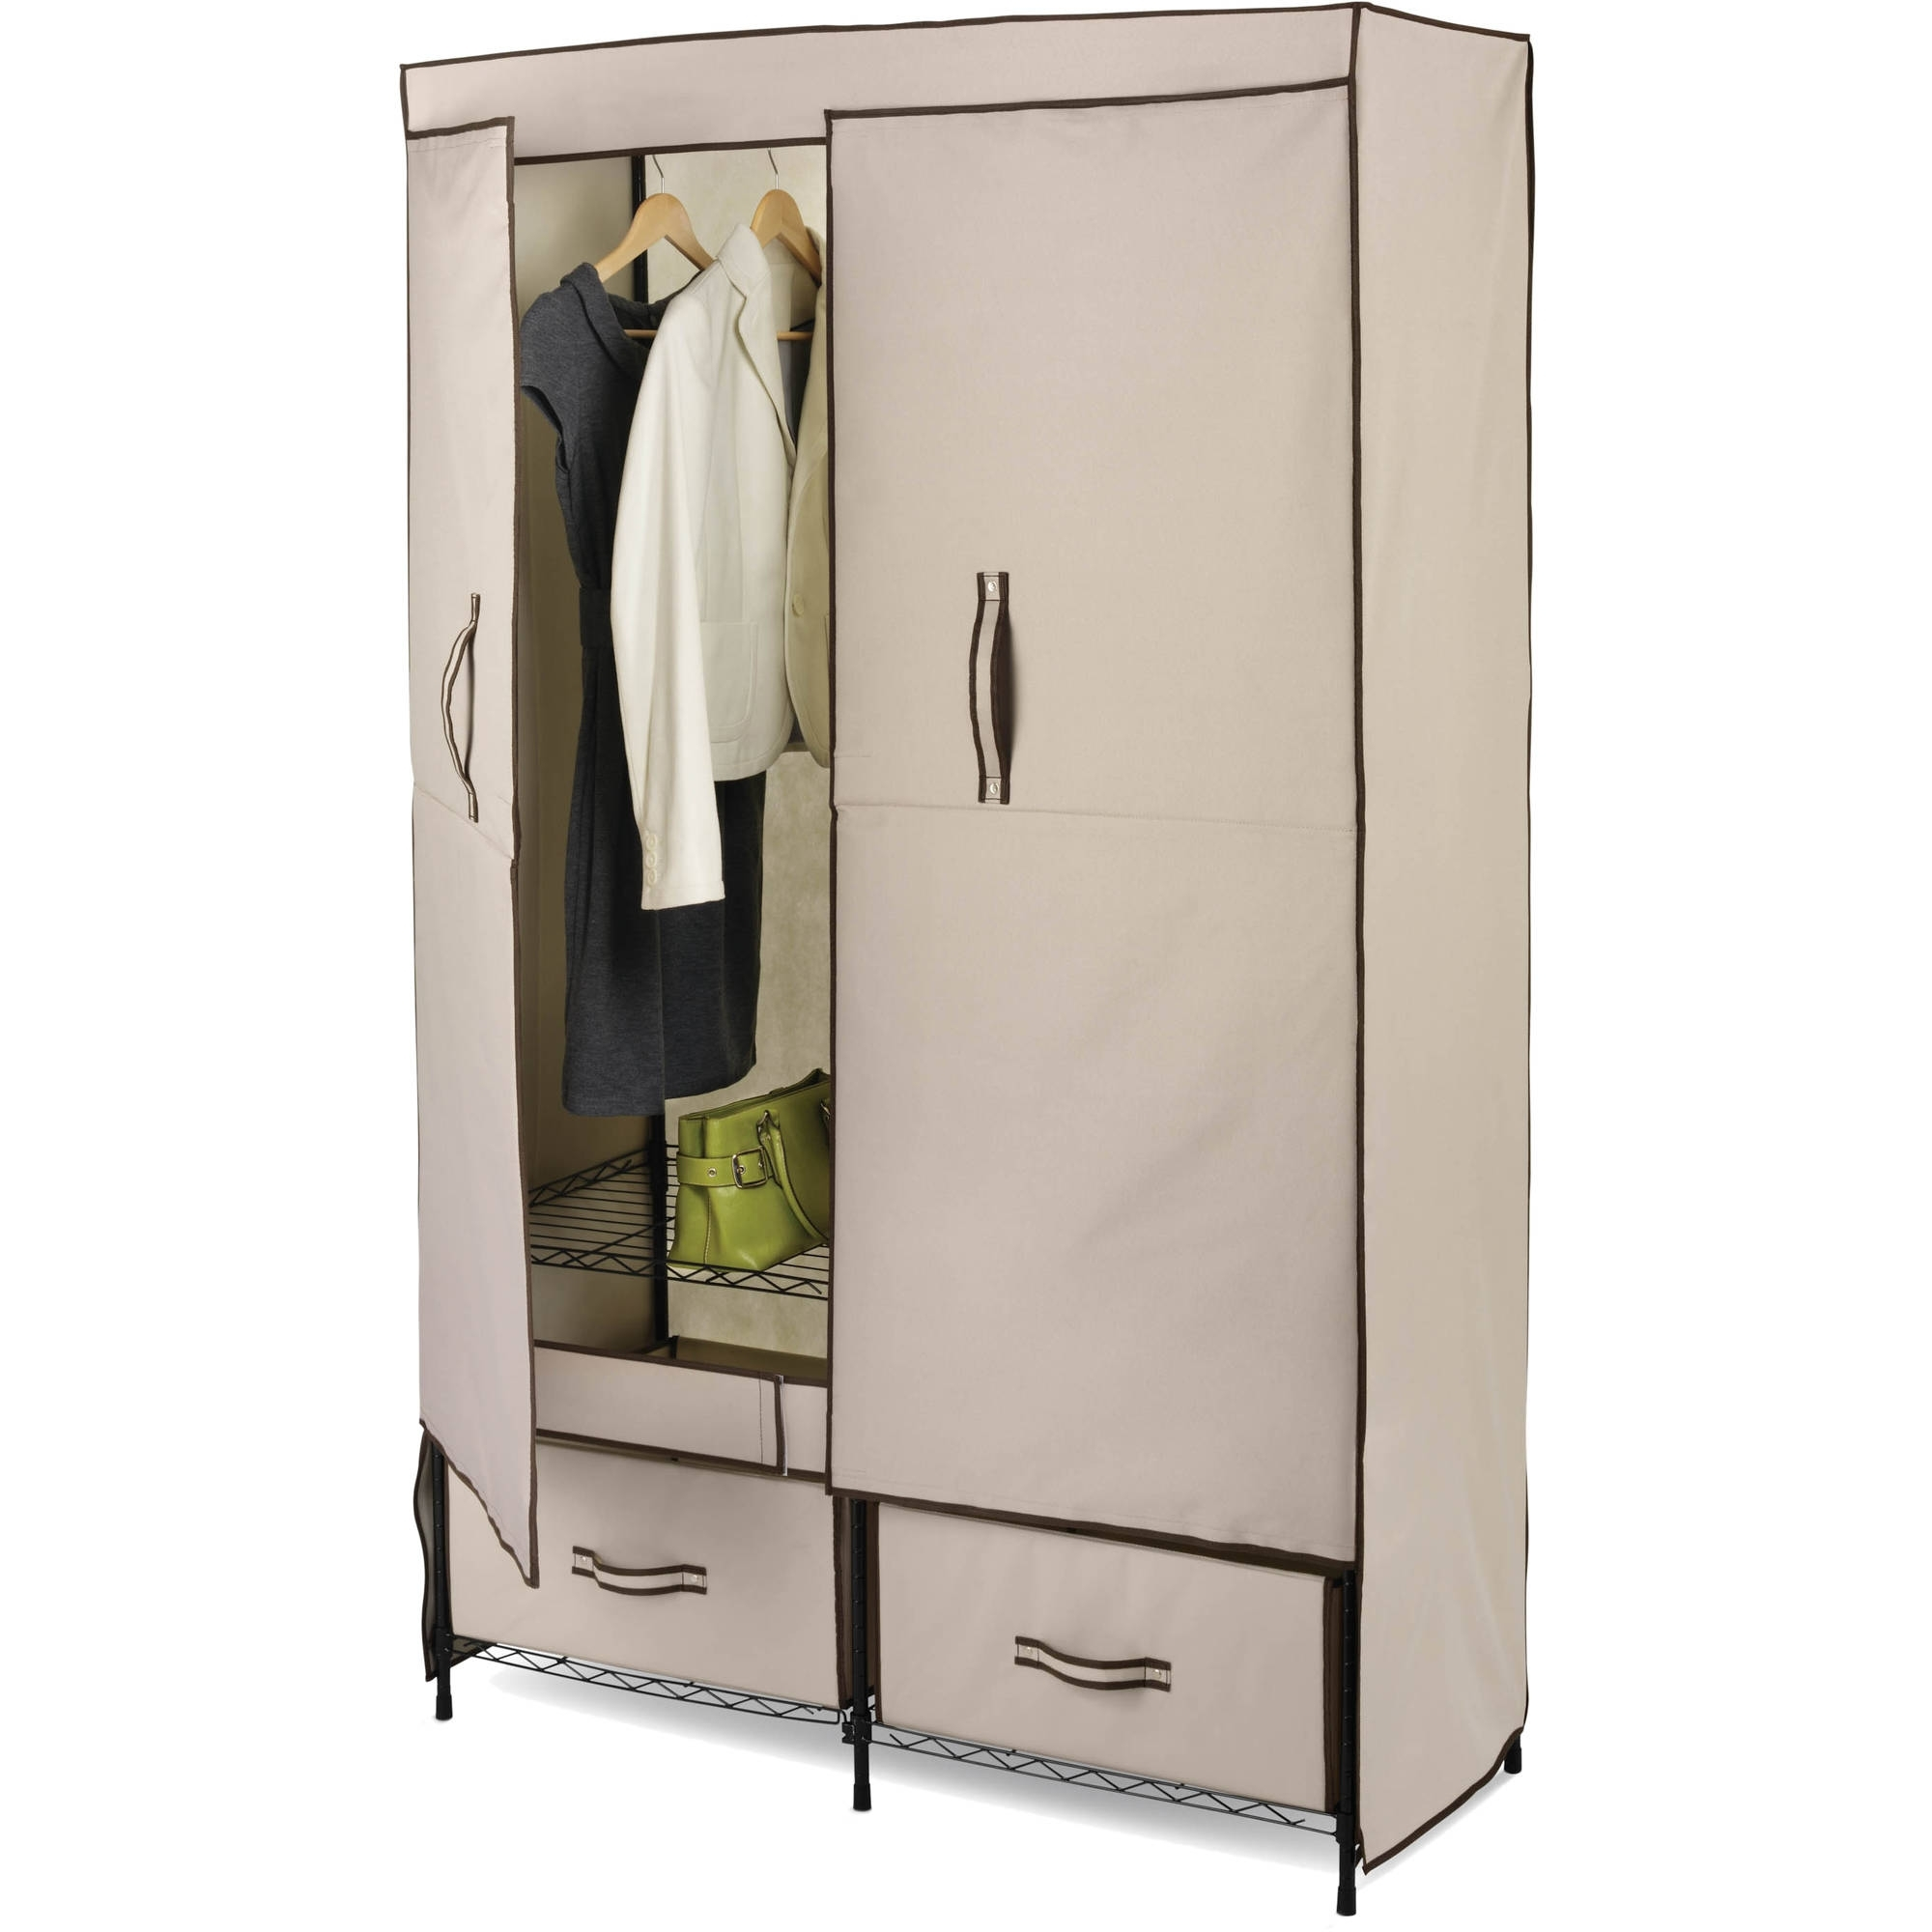 Popular Honey Can Do Double Door Closet Storage With Two Drawers, Beige In Cheap Double Wardrobes (View 10 of 15)